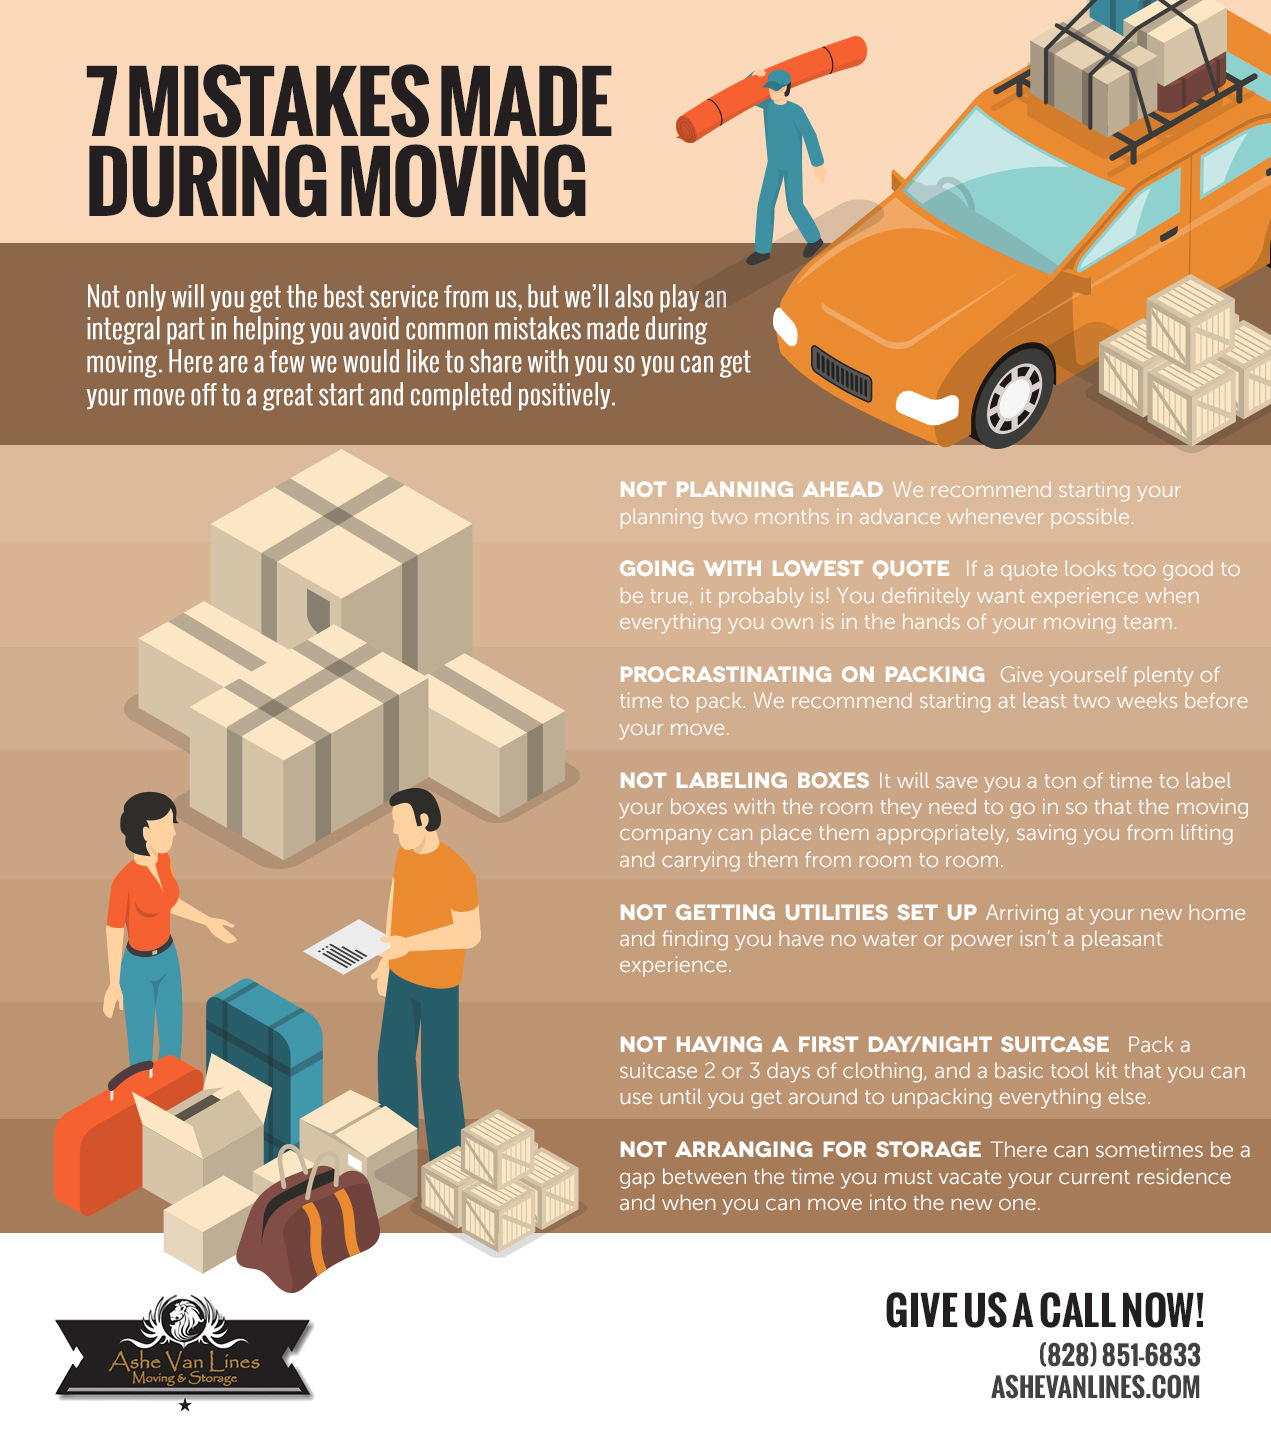 7 mistakes made during moving